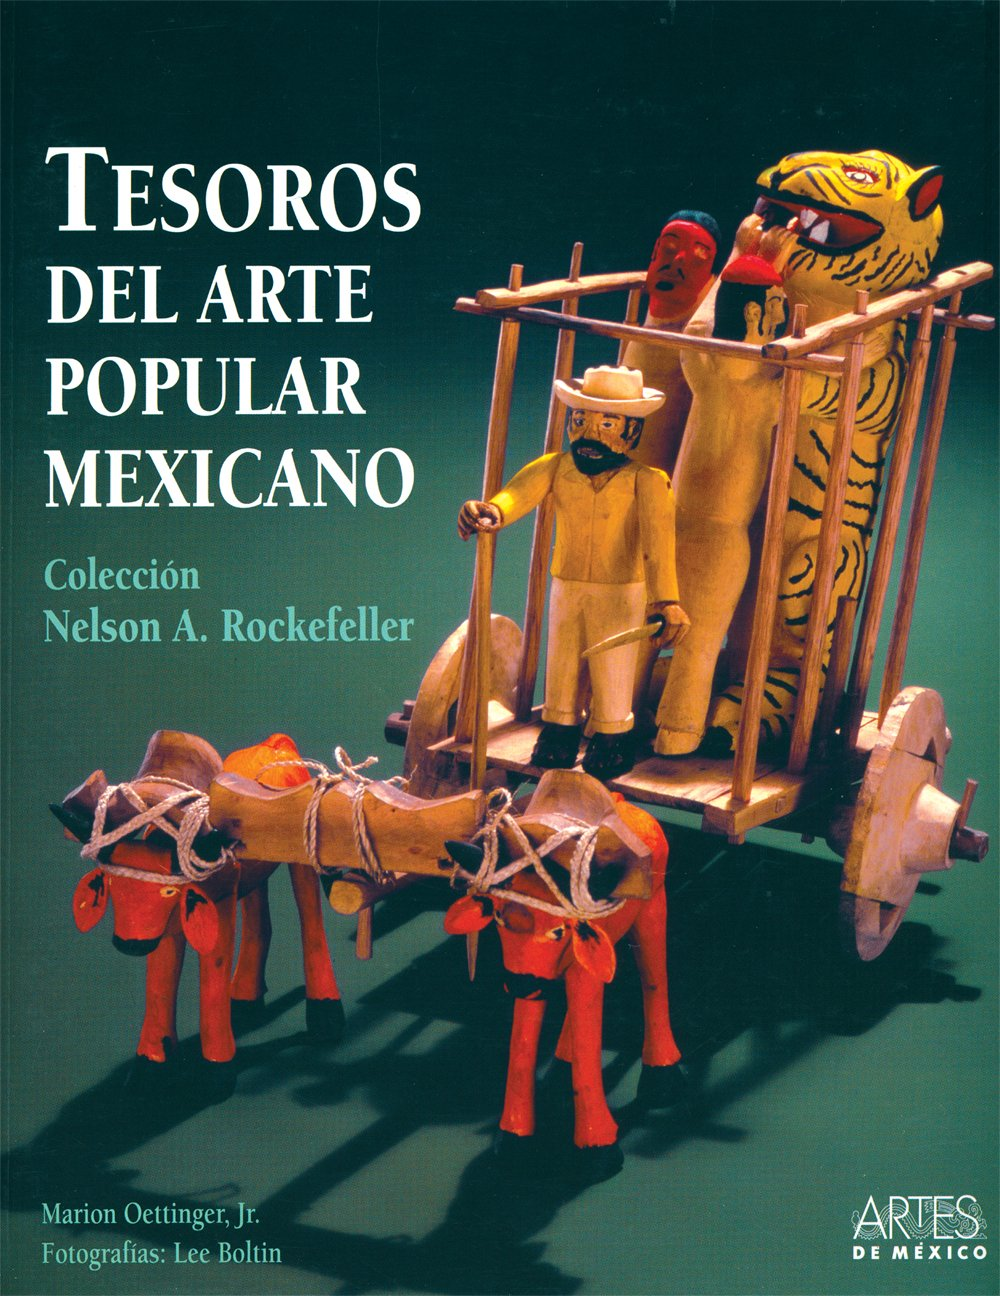 Tesoros del arte popular mexicano: Coleccion De Nelson A. Rockefeller (Spanish Edition): Marion, Jr. Oettinger: 9786074610437: Amazon.com: Books